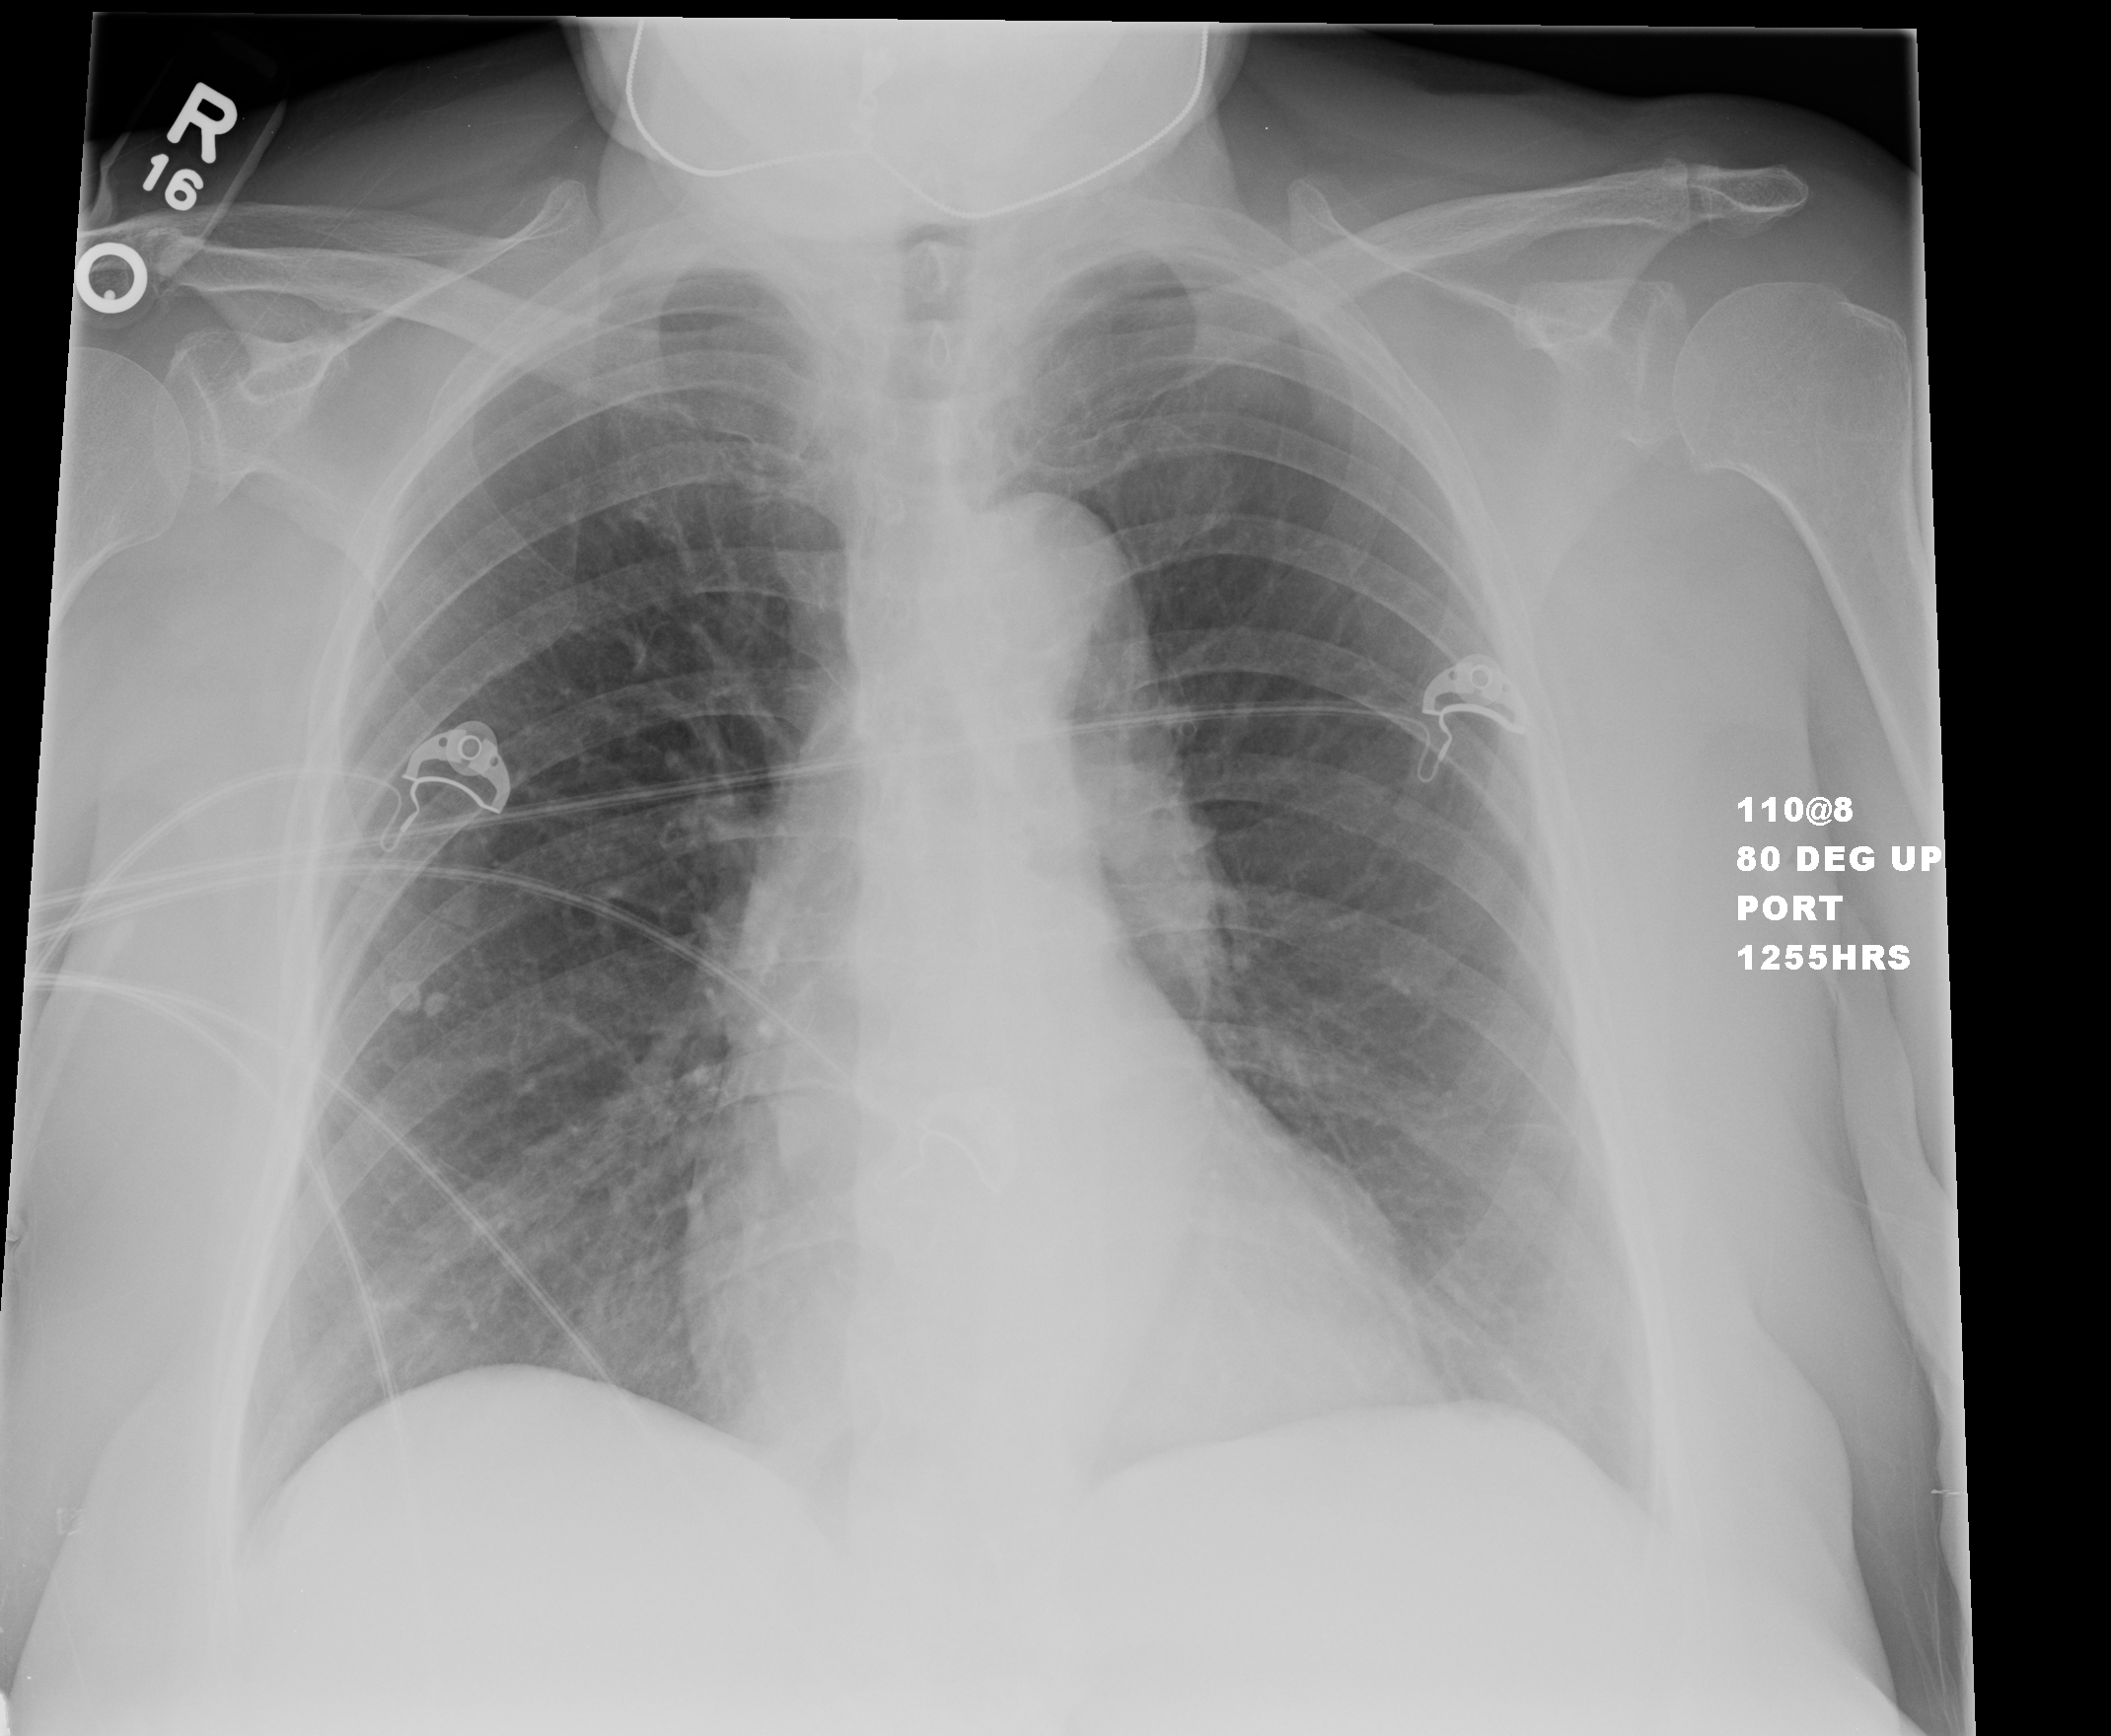 Two calcified nodules can be seen in the lateral R mid lung field ...